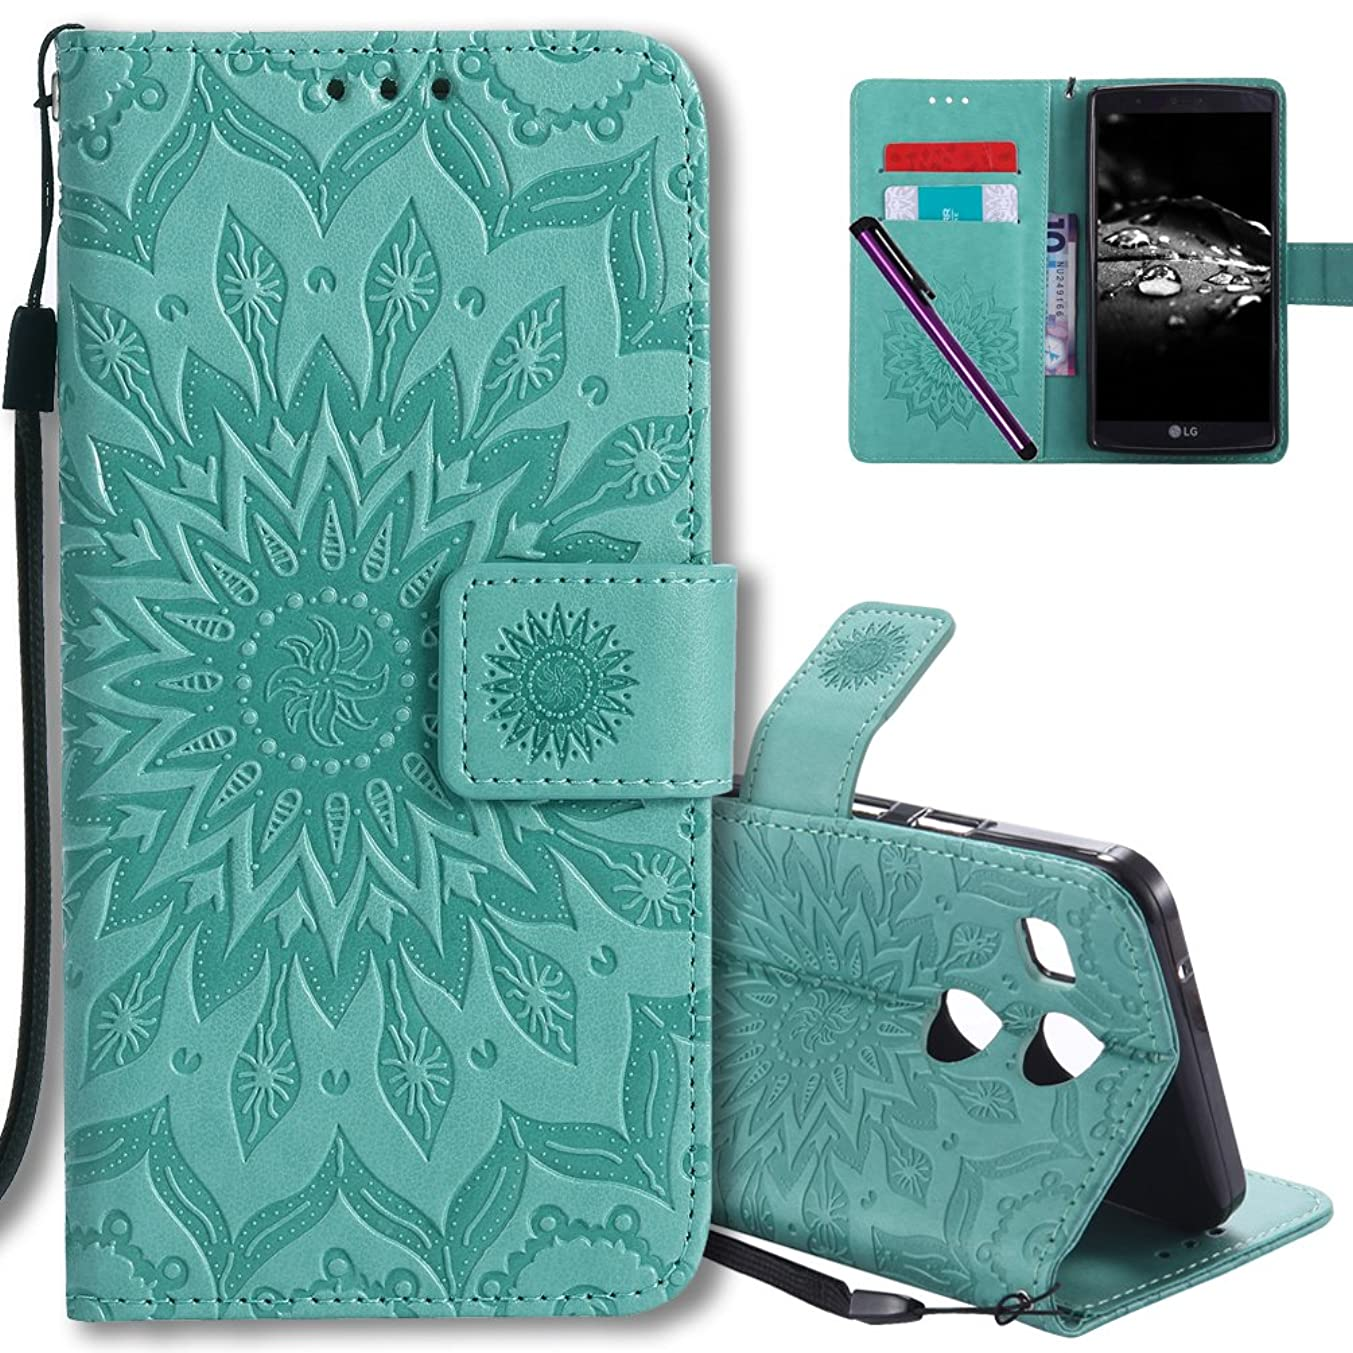 LG Nexus 5X Flip Case COTDINFORCA Emboss Mandala with Card Holder Slot Pockets, Wrist Strap, Magnetic Closure Premium PU Leather Case Cover For LG Google Nexus 5X (2015). Mandala Green